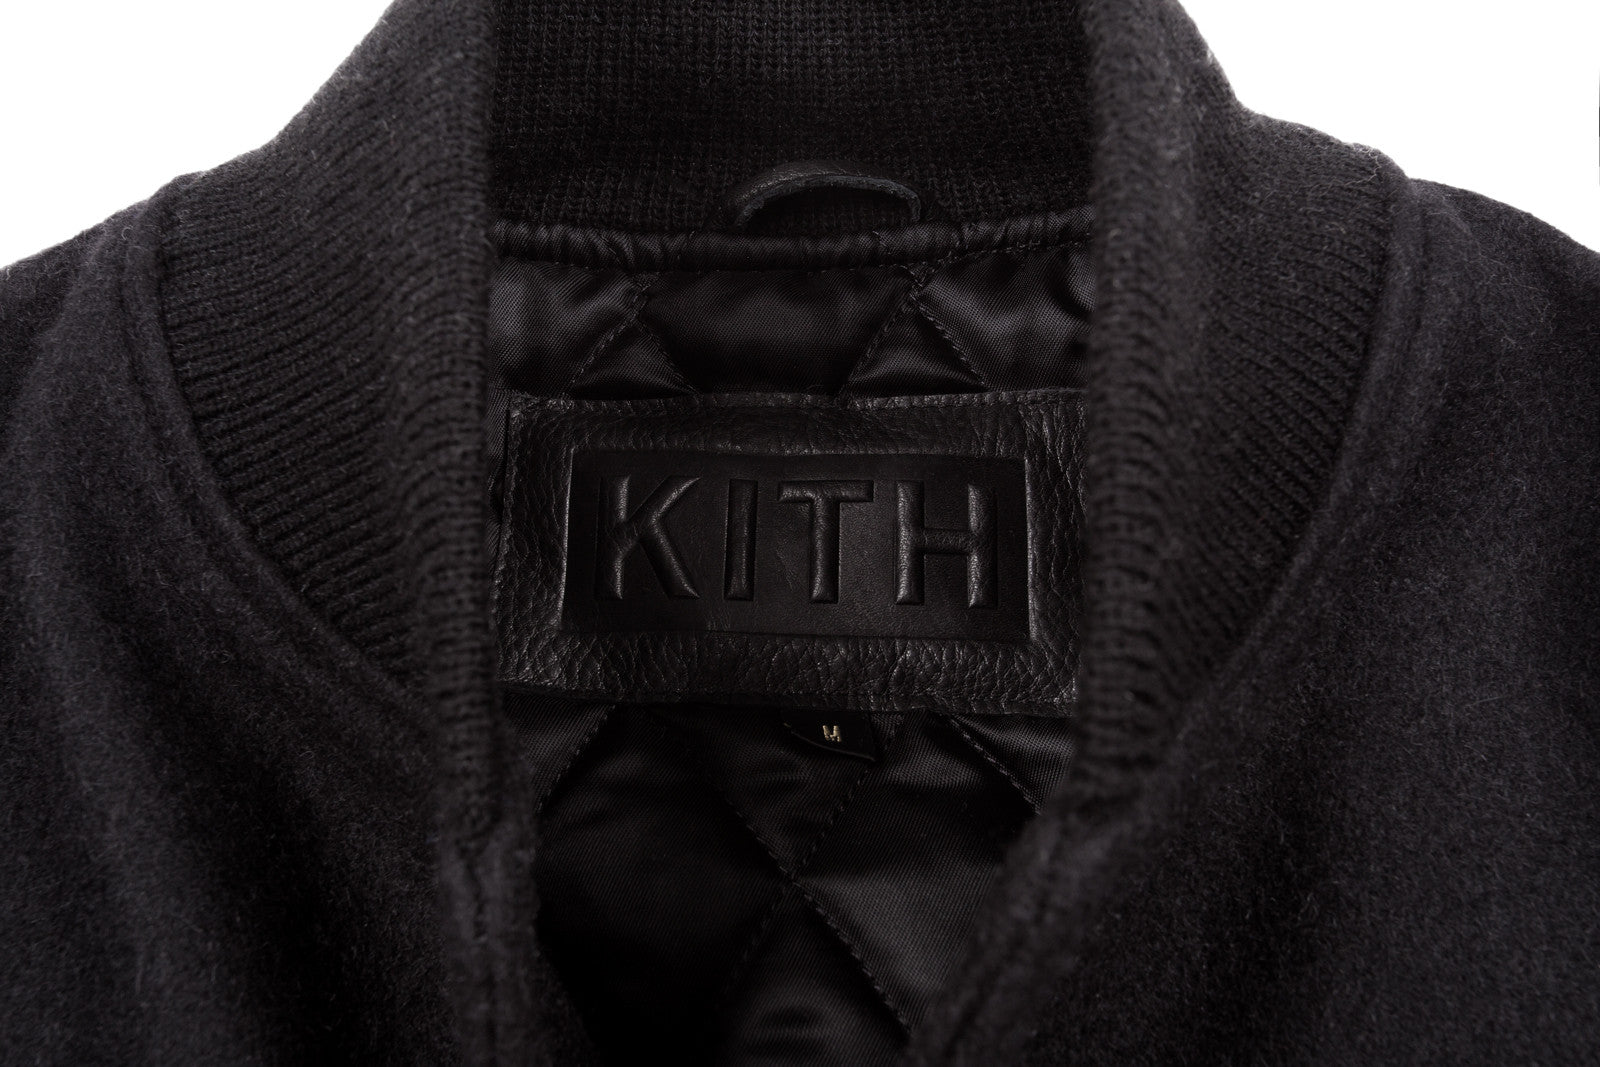 KITH Classics x Golden Bear Long Varsity Jacket - Triple Black